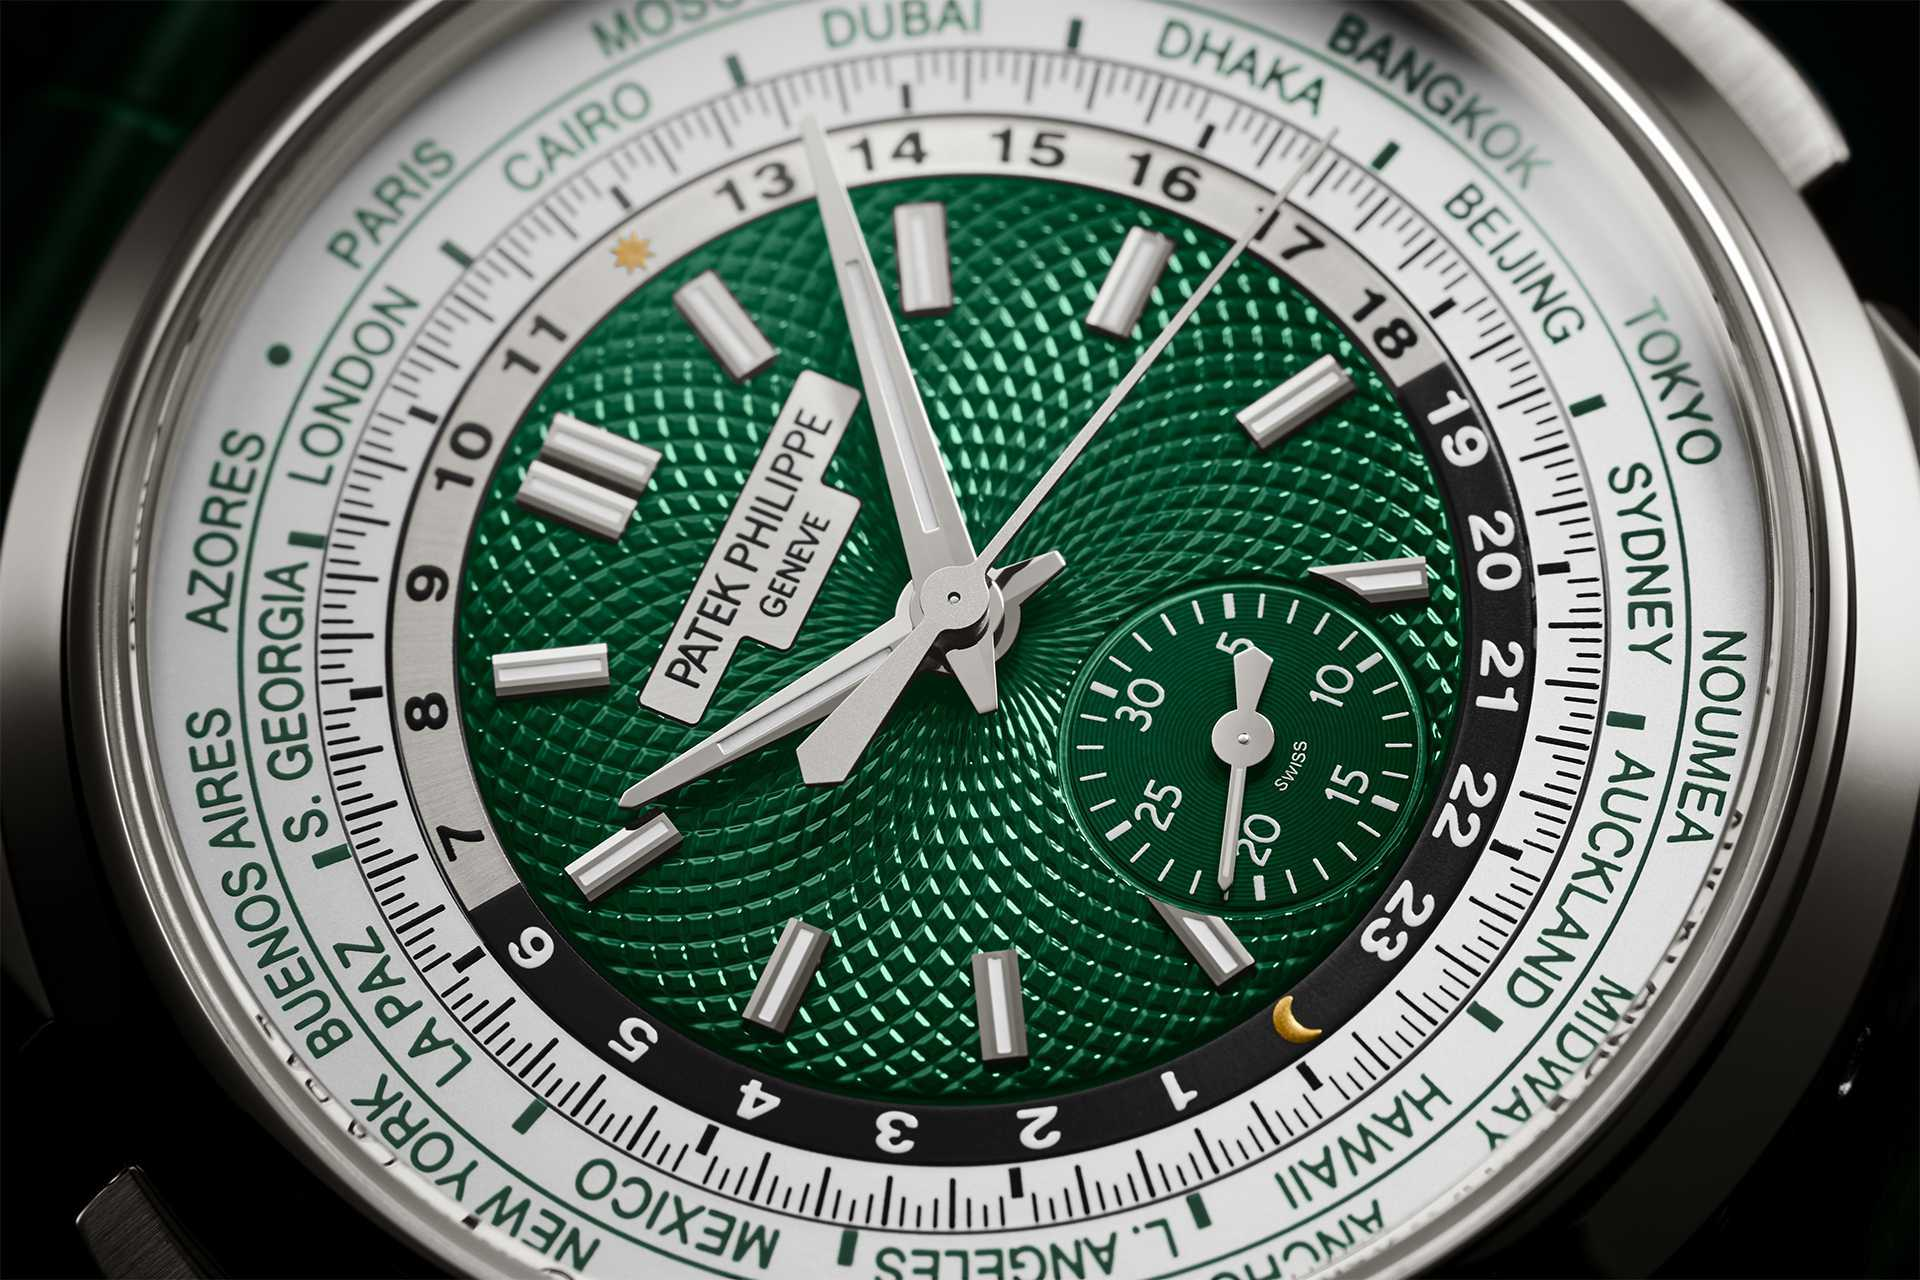 Patek Philippe self-winding world time flyback chronograph Ref. 5930P-001